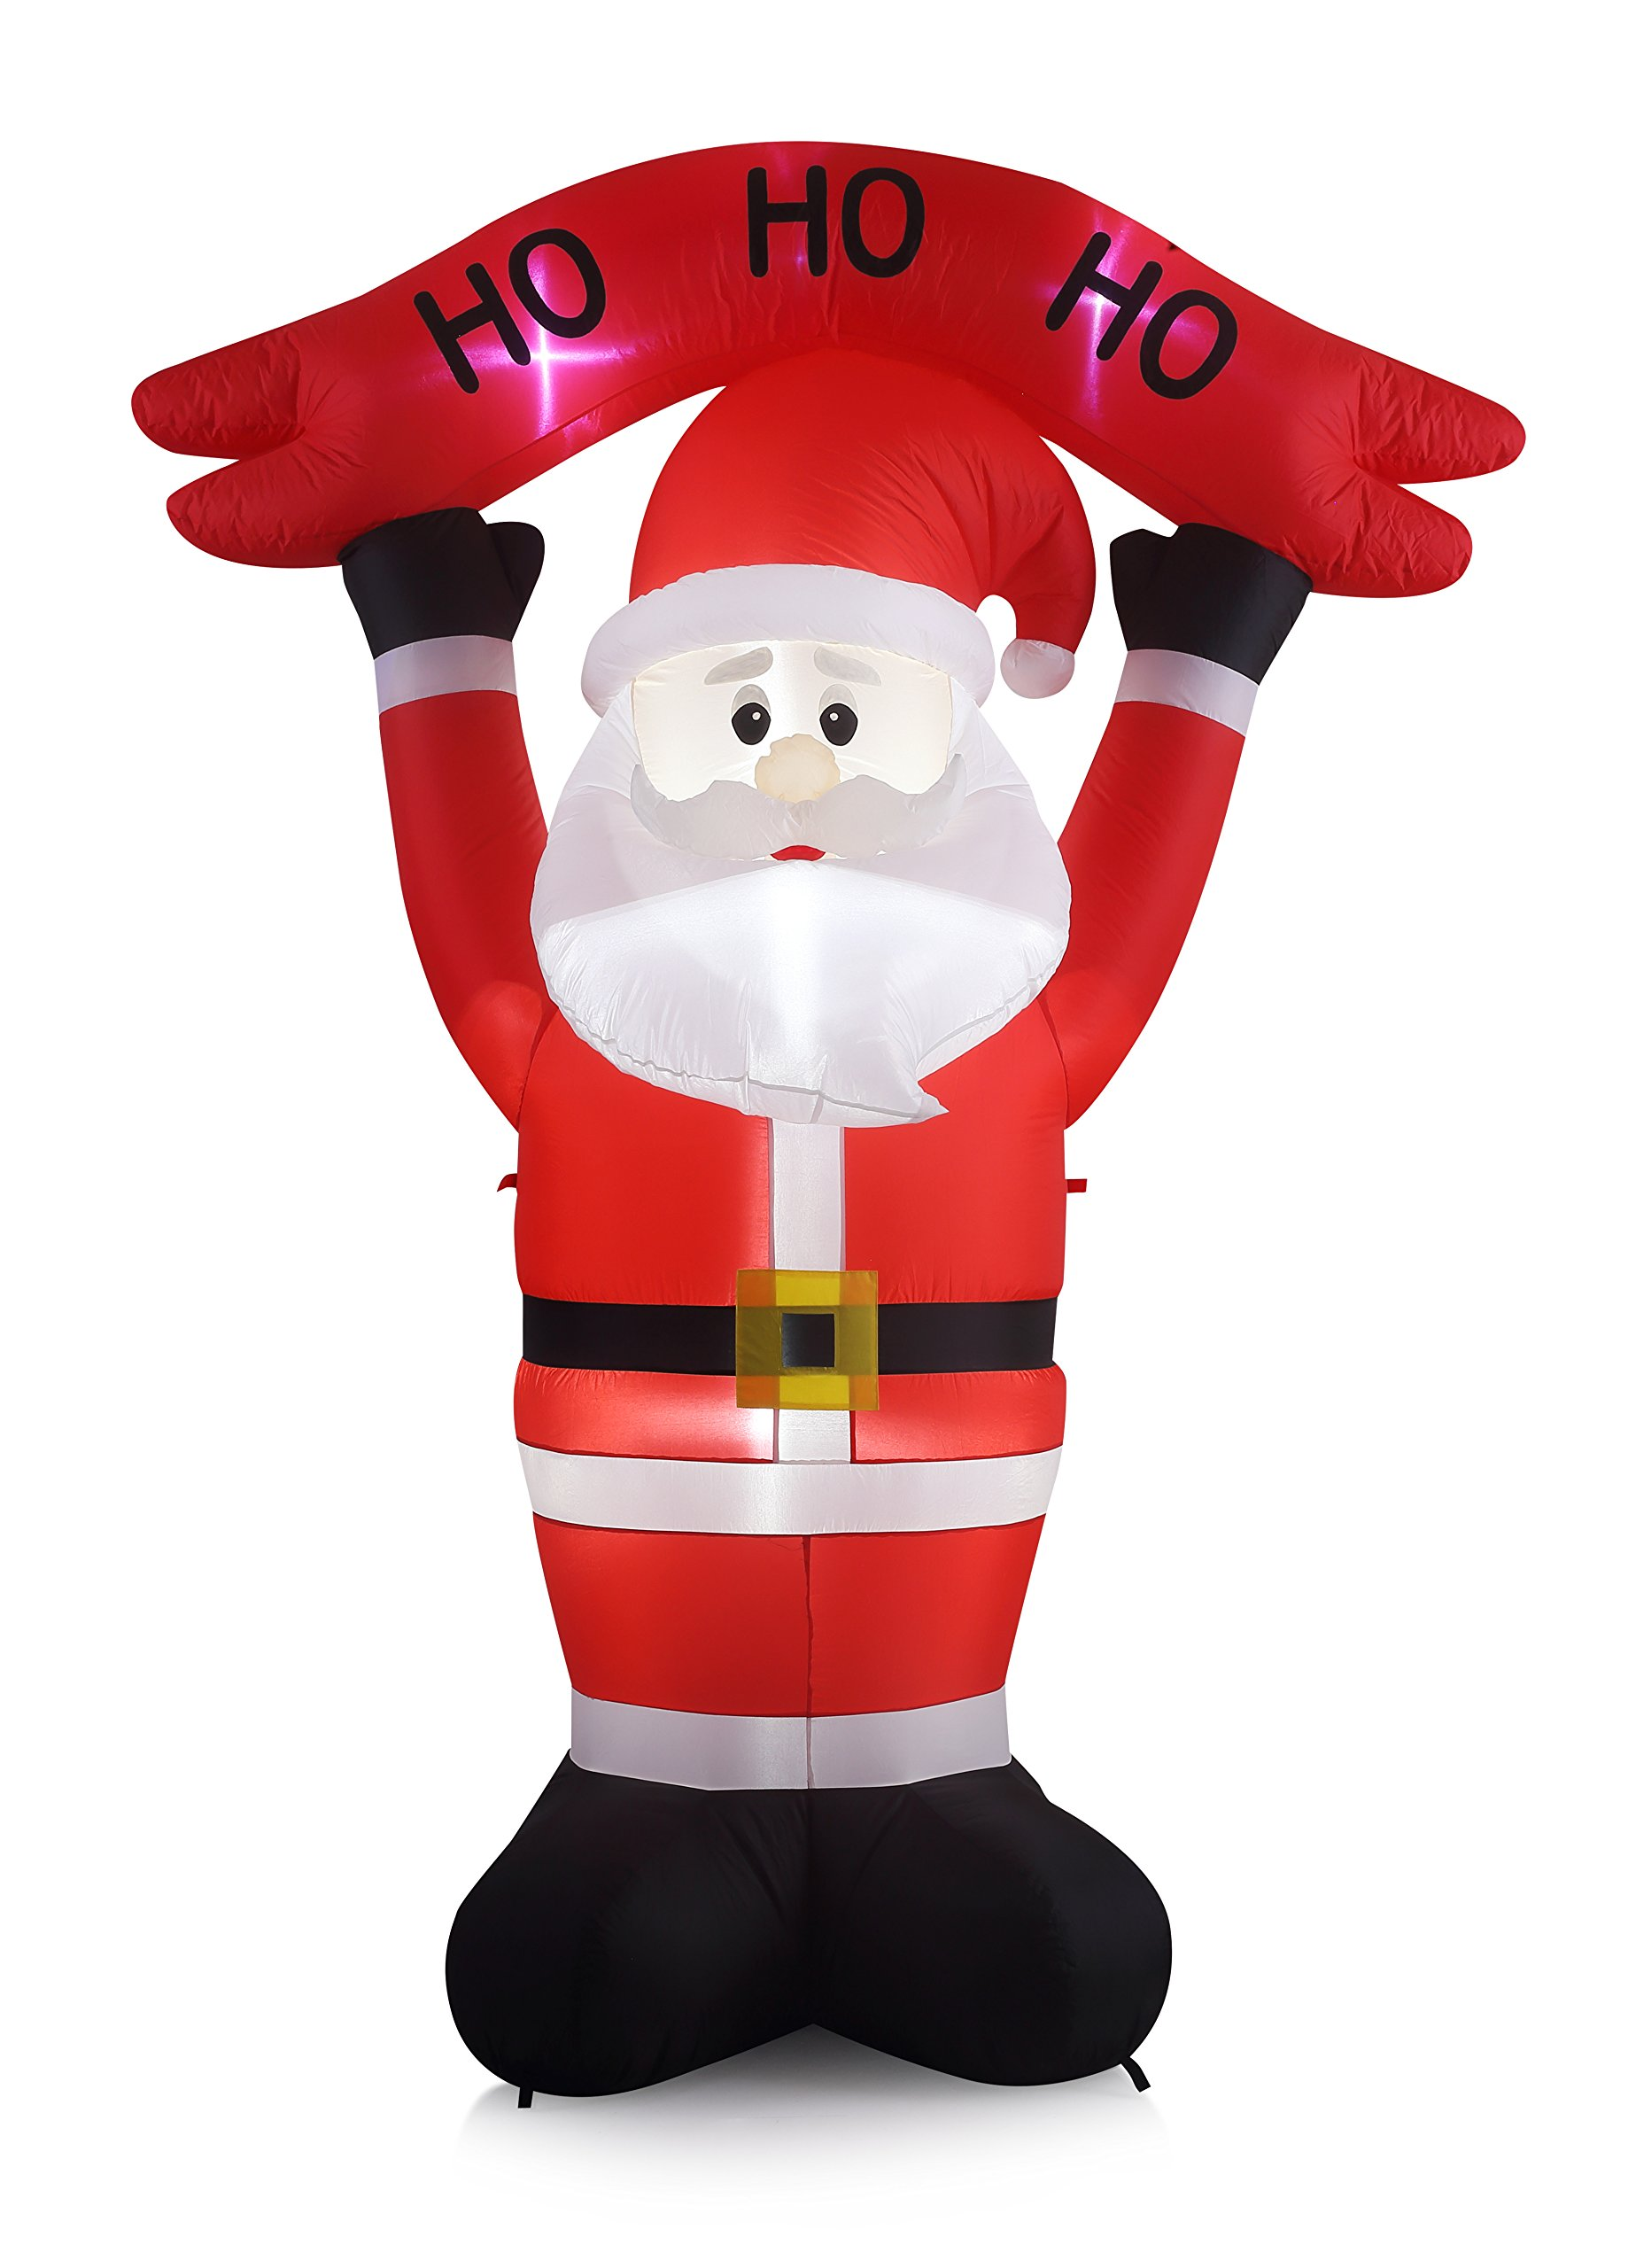 8 Foot Inflatable Santa with HO HO HO Banner Sign Indoor Outdoor LED Lighted Yard Decoration by VIDAMORE